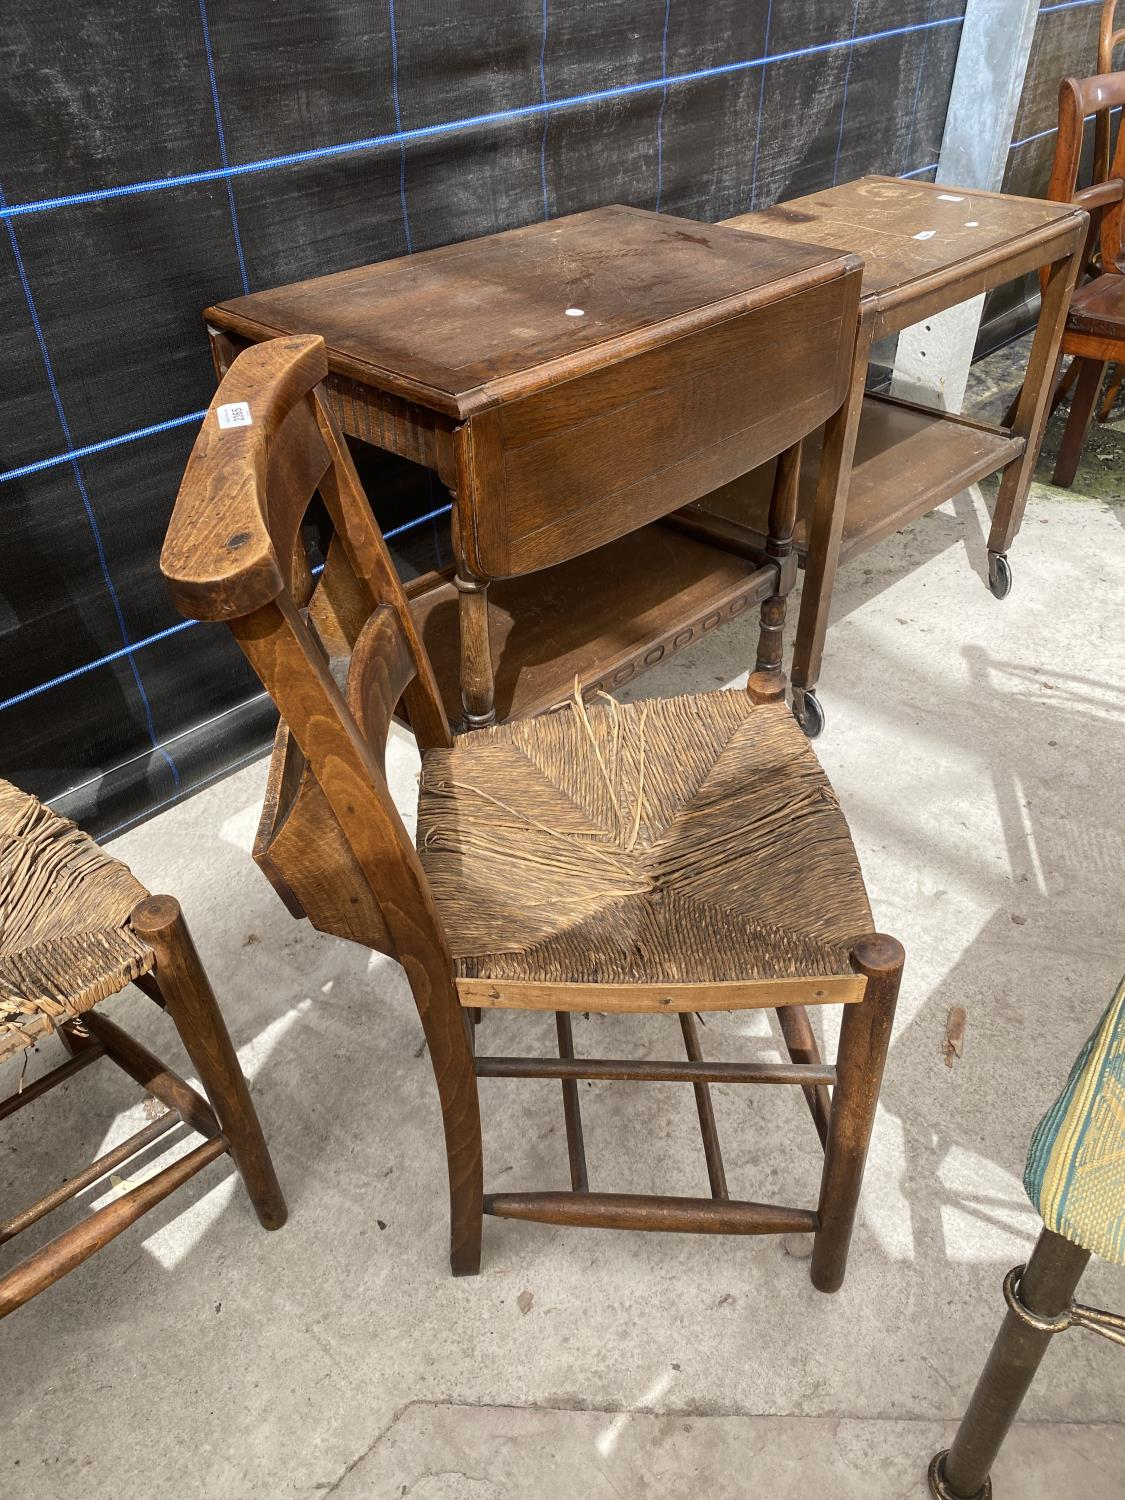 FOUR BEECH FRAMED CHAPEL CHAIRS WITH RUSH SEATS - Image 5 of 5